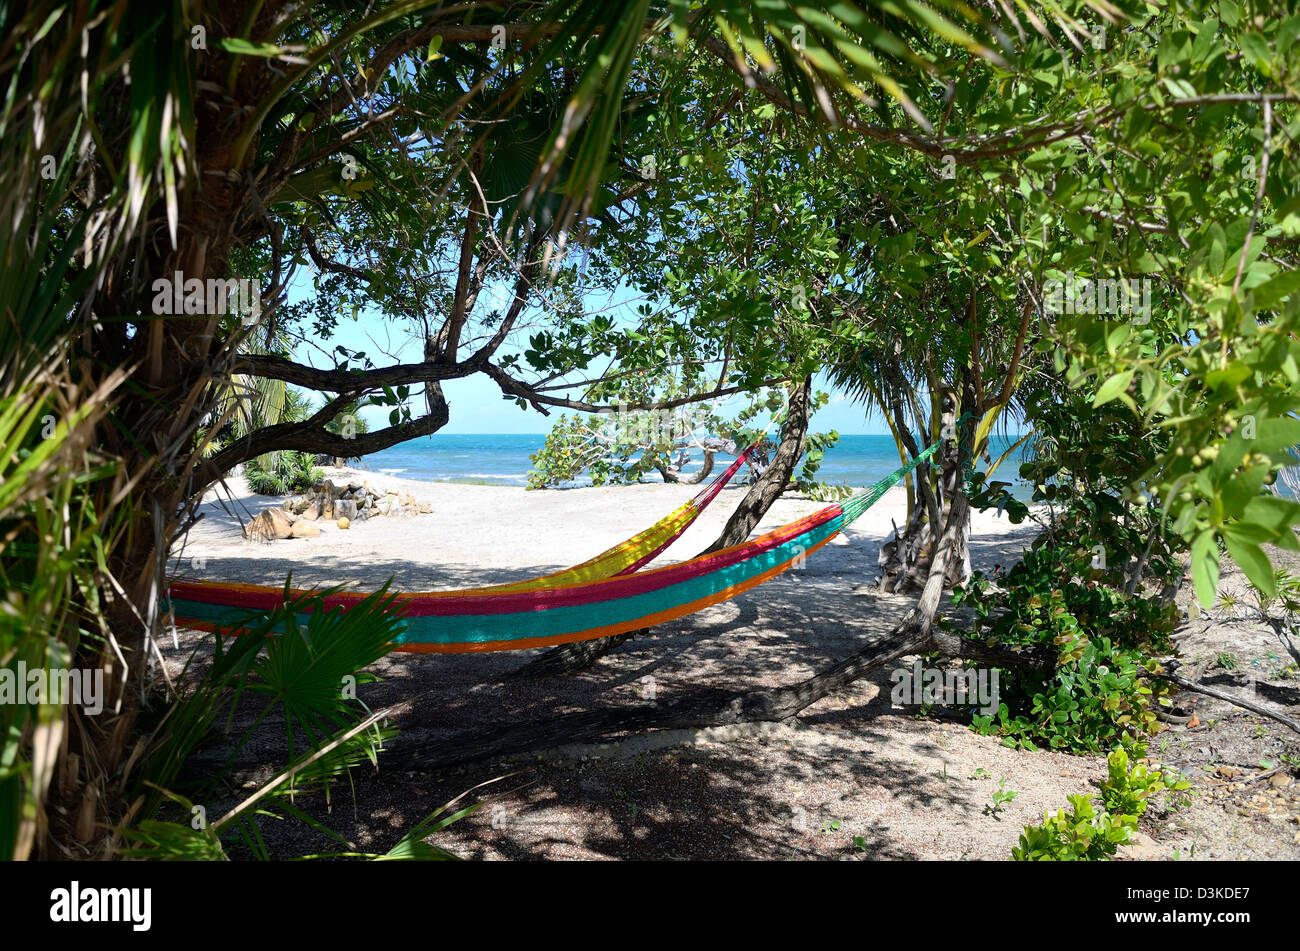 two hammocks stung beneath trees by a beach in the Caribbean - Stock Image